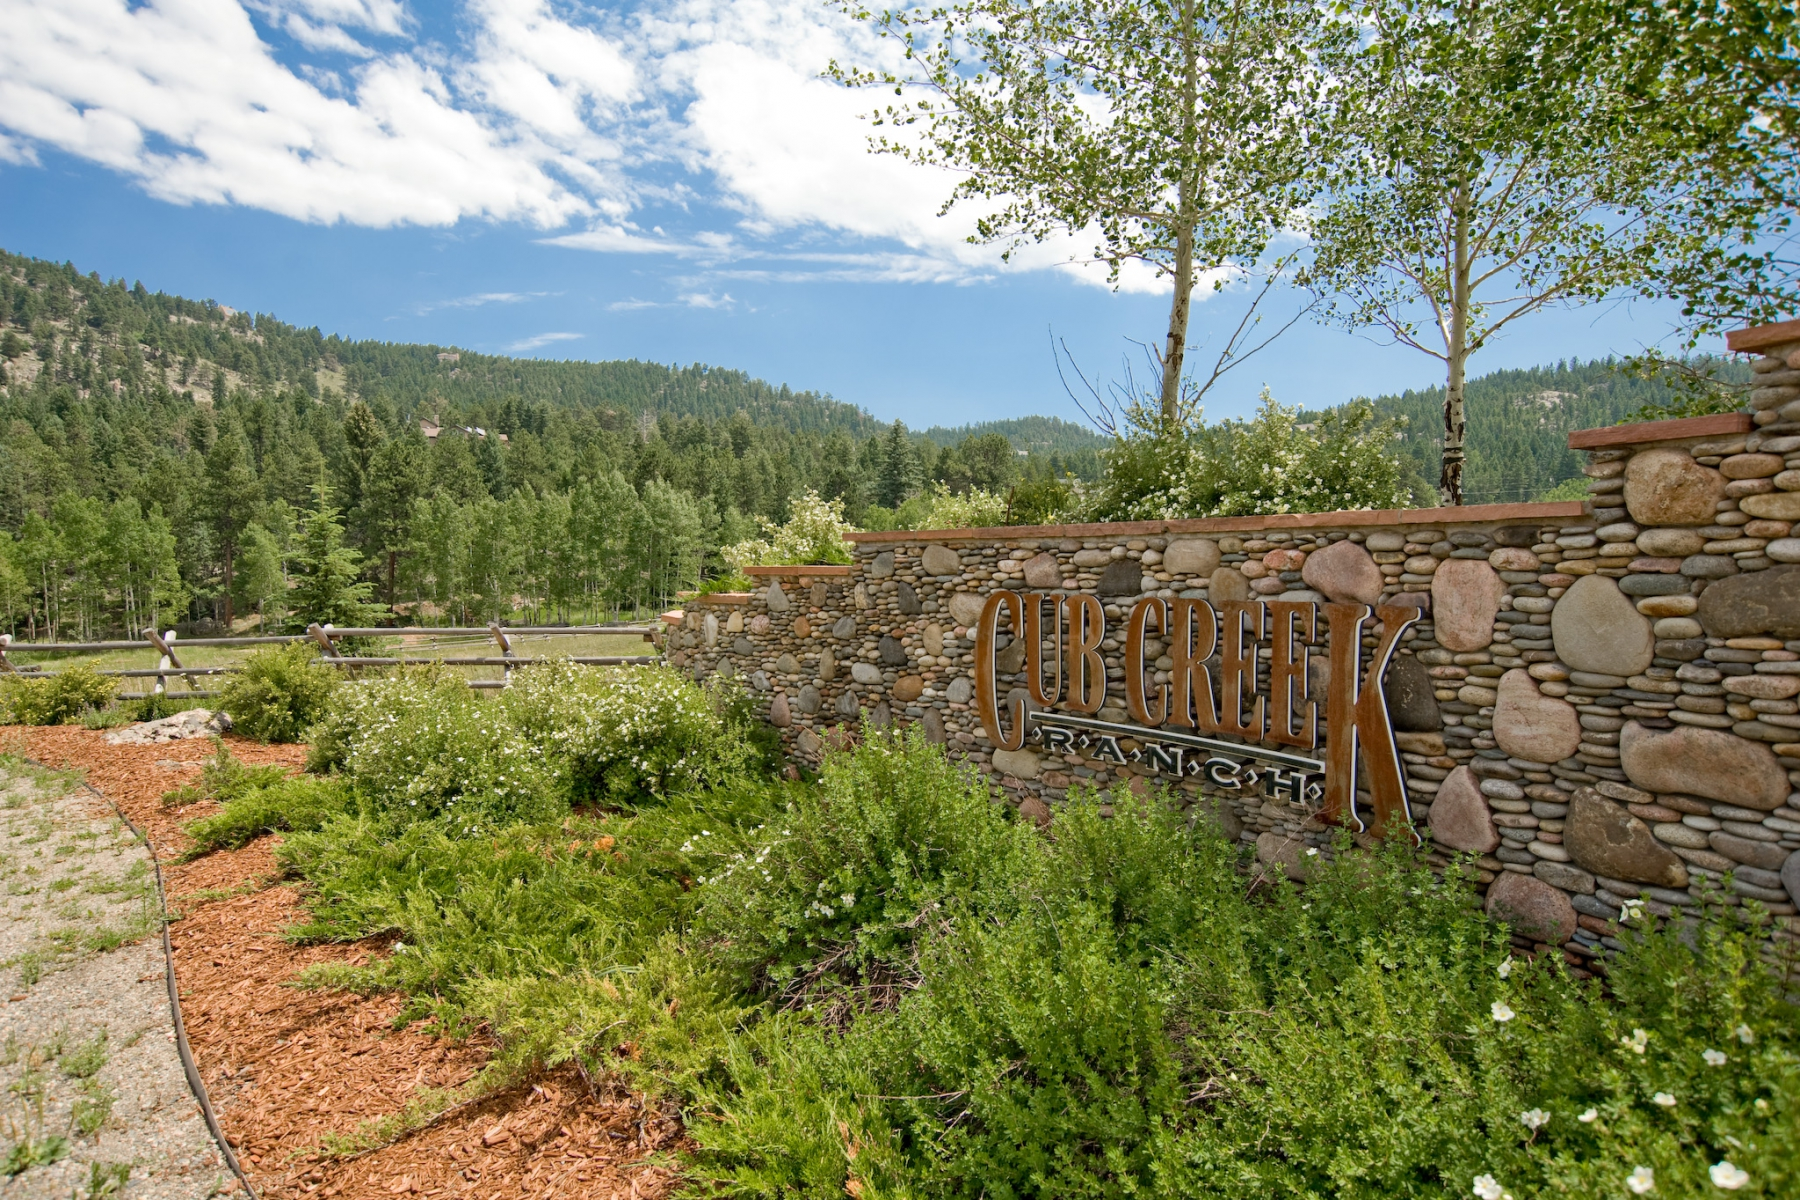 Terreno por un Venta en Nestled in a private location with gorgeous surroundings 6572 Little Cub Creek Road Evergreen, Colorado 80439 Estados Unidos